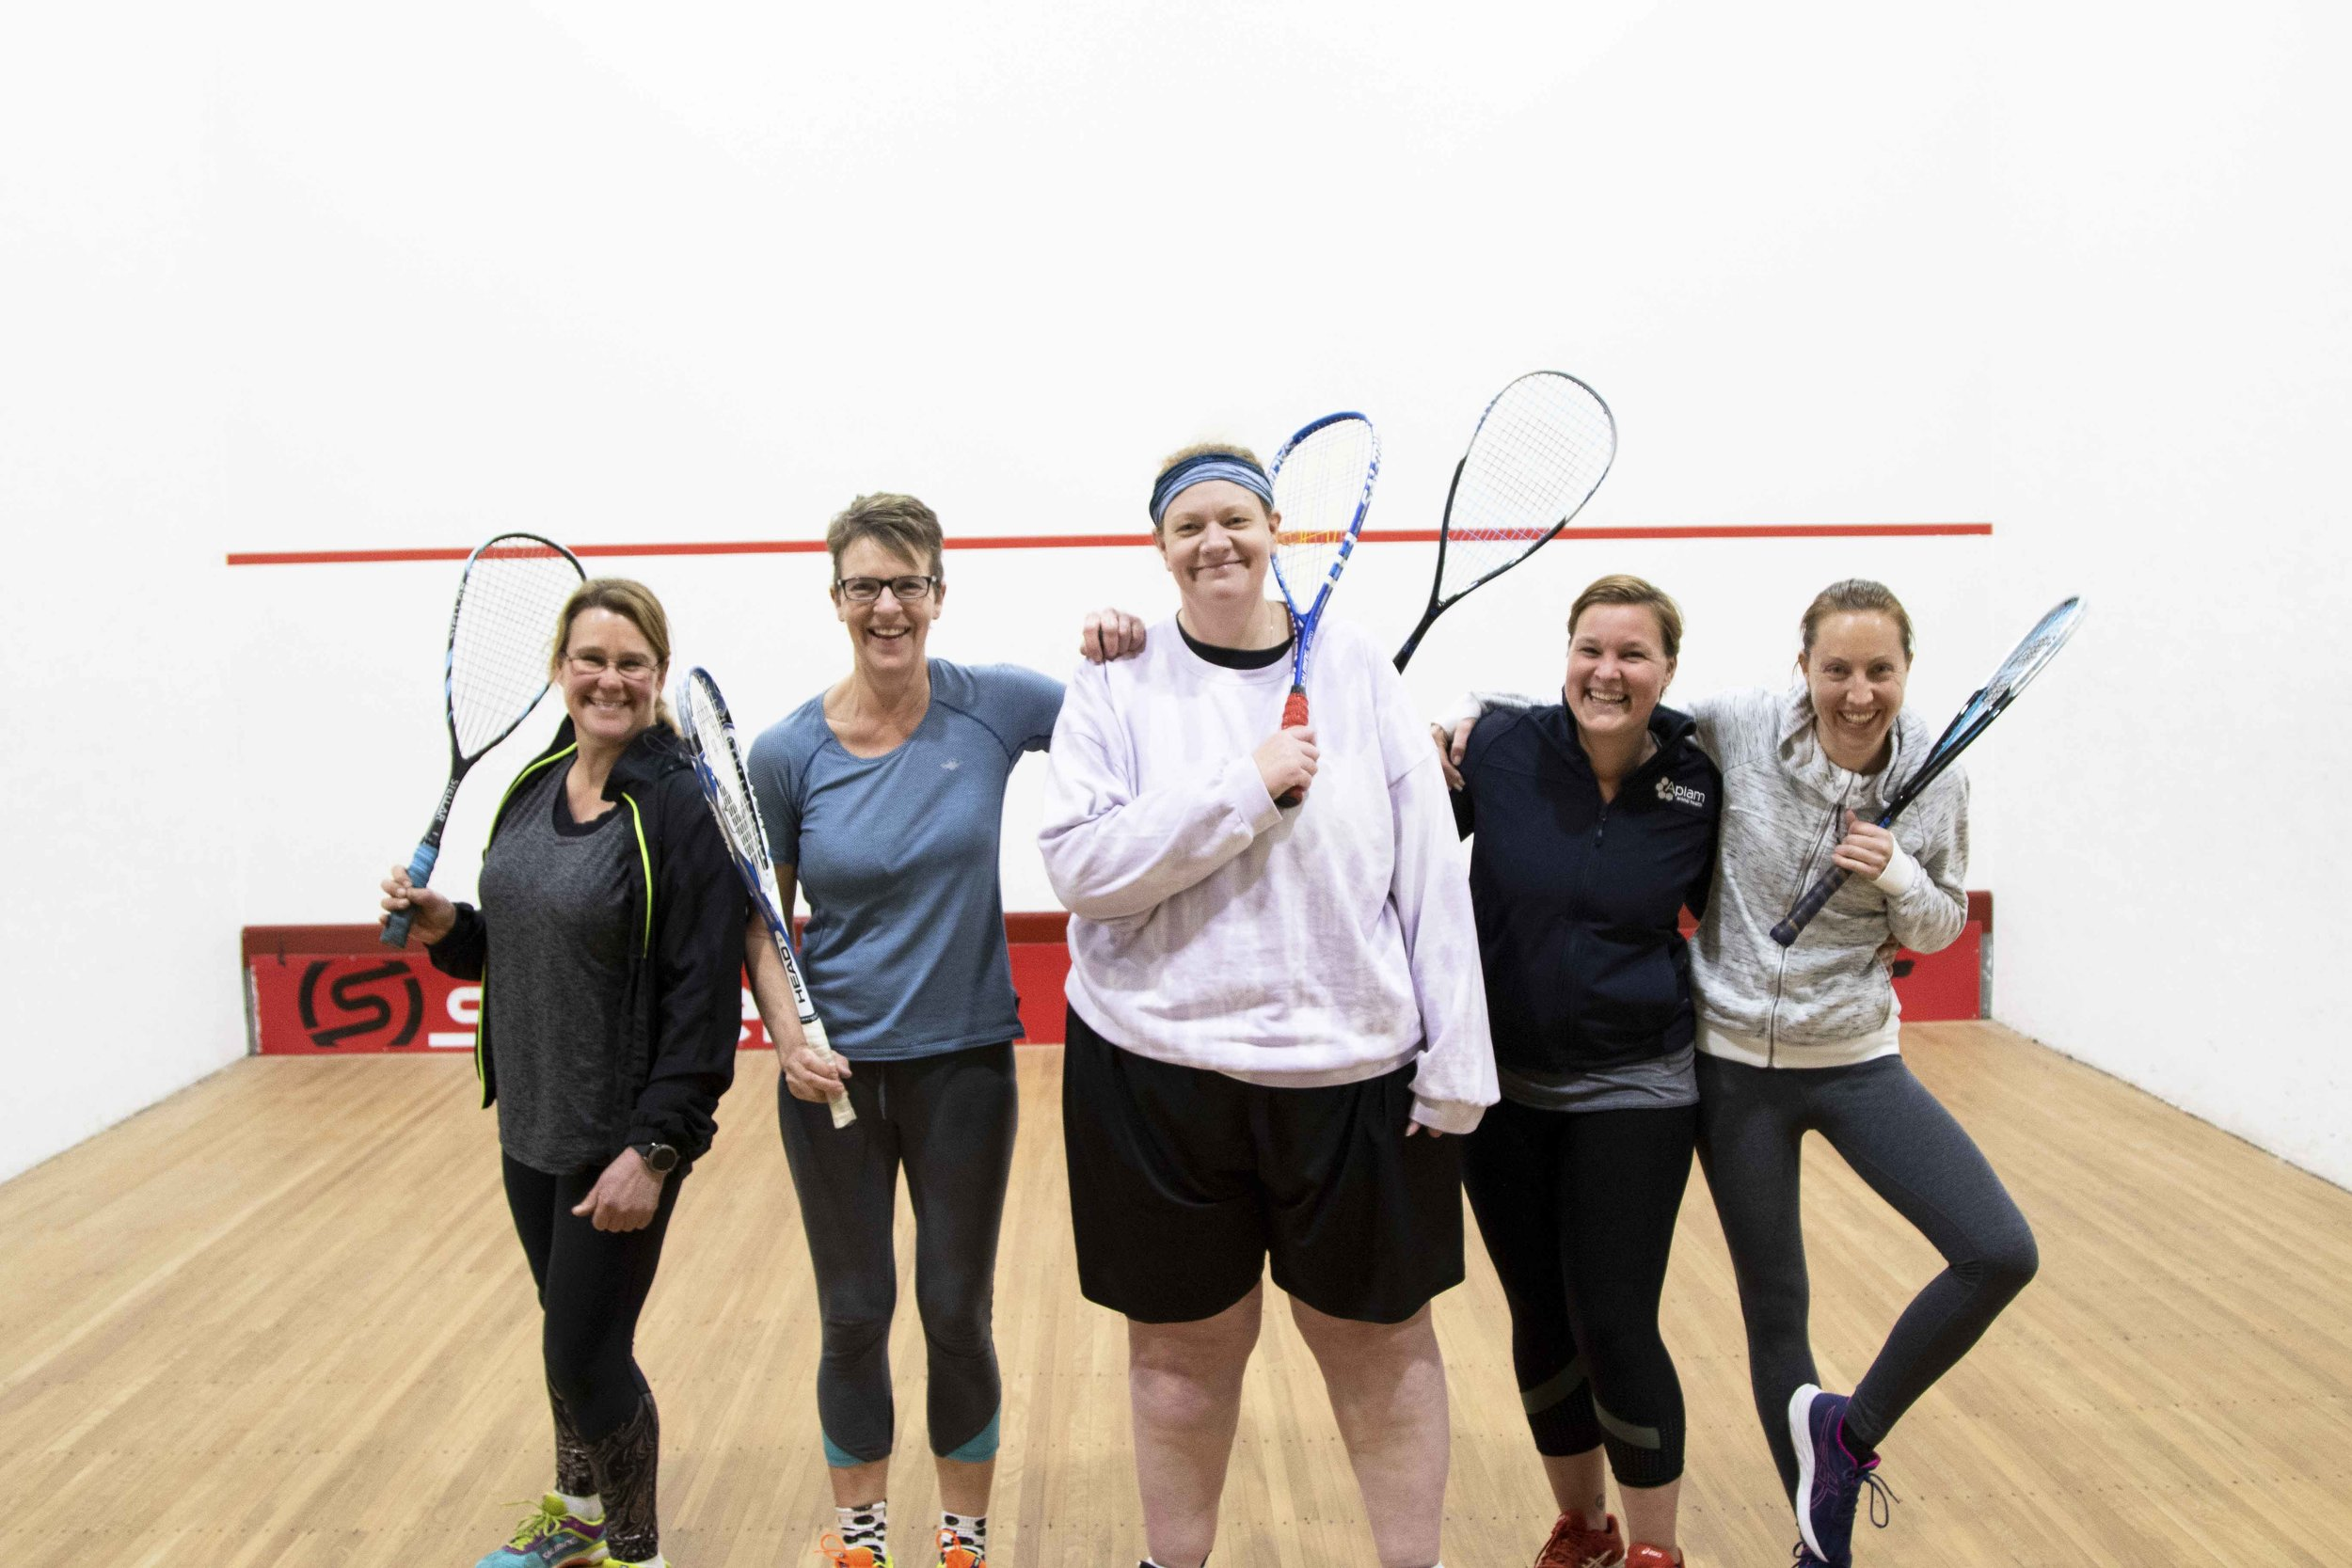 We probably burn more calories laughing than playing squash.